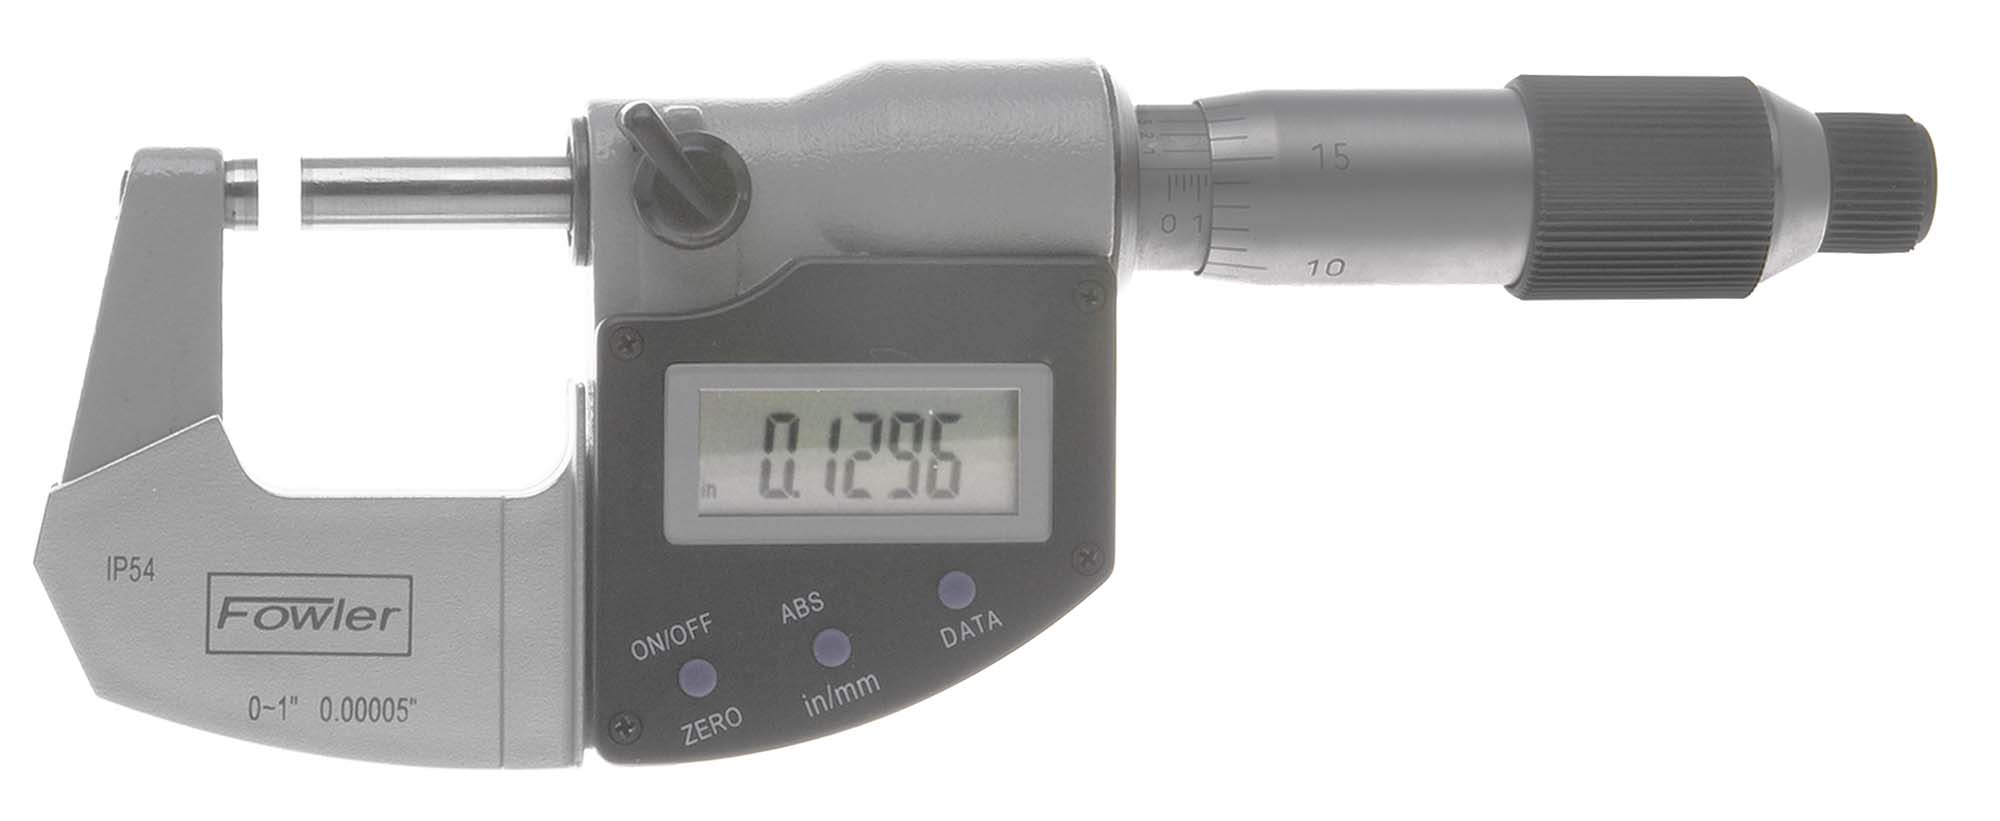 0-1in. XTRA-VALUE Fowler Electronic Micrometer - IP54